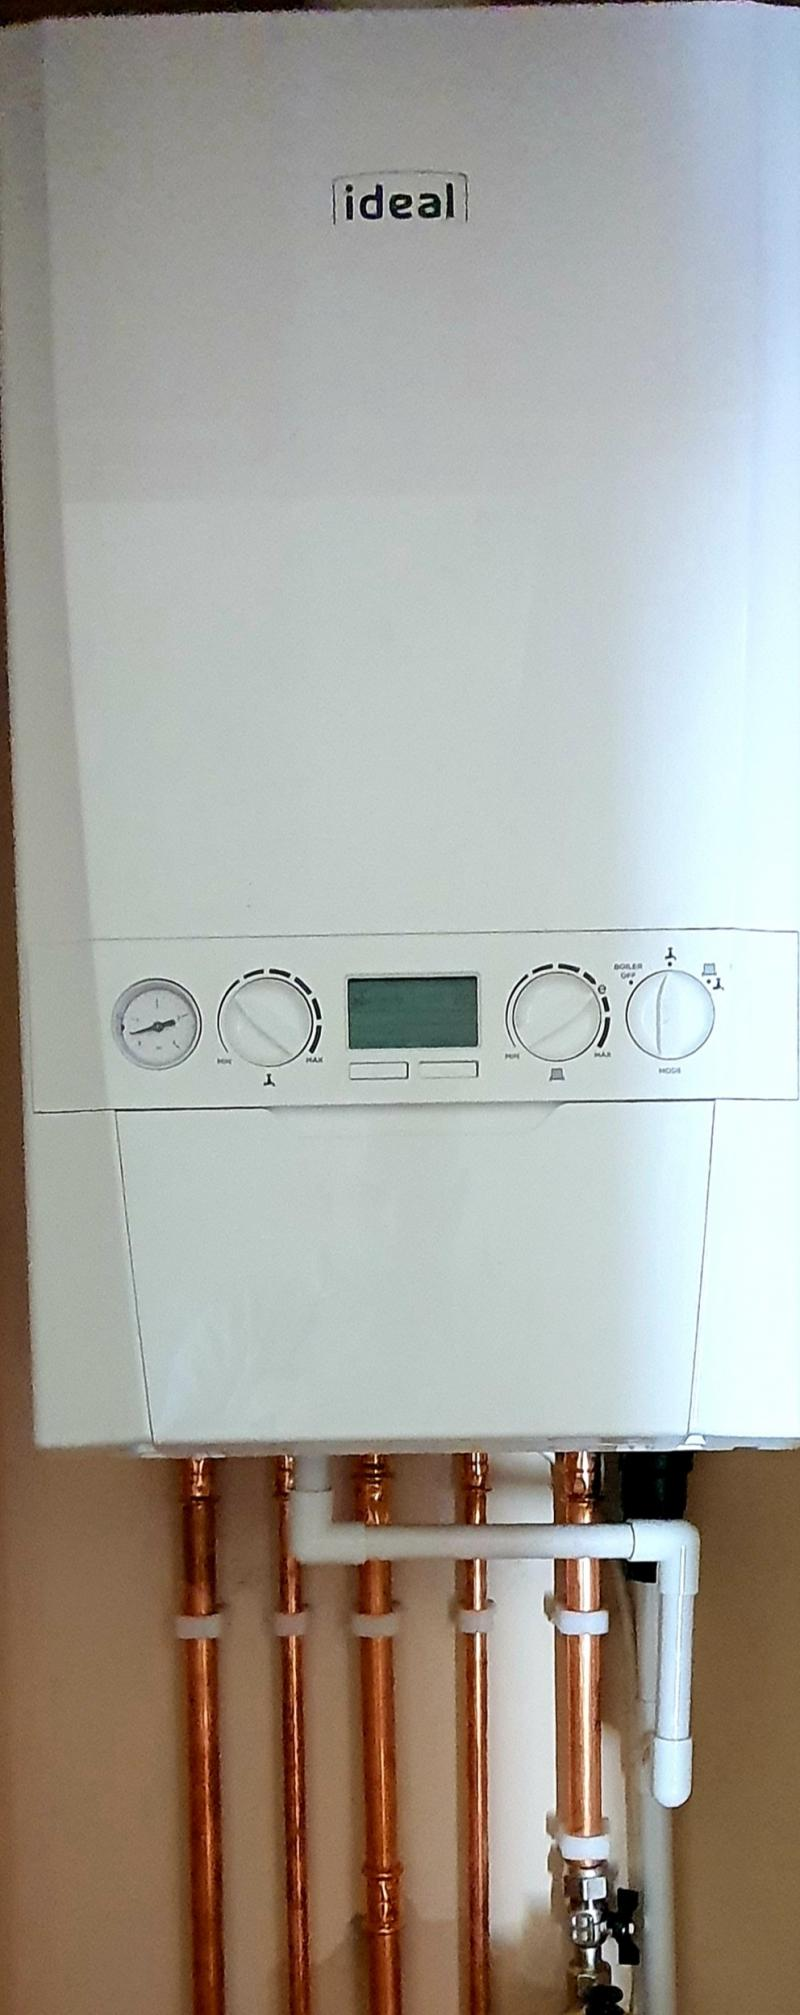 Full conversion from back boiler to combi